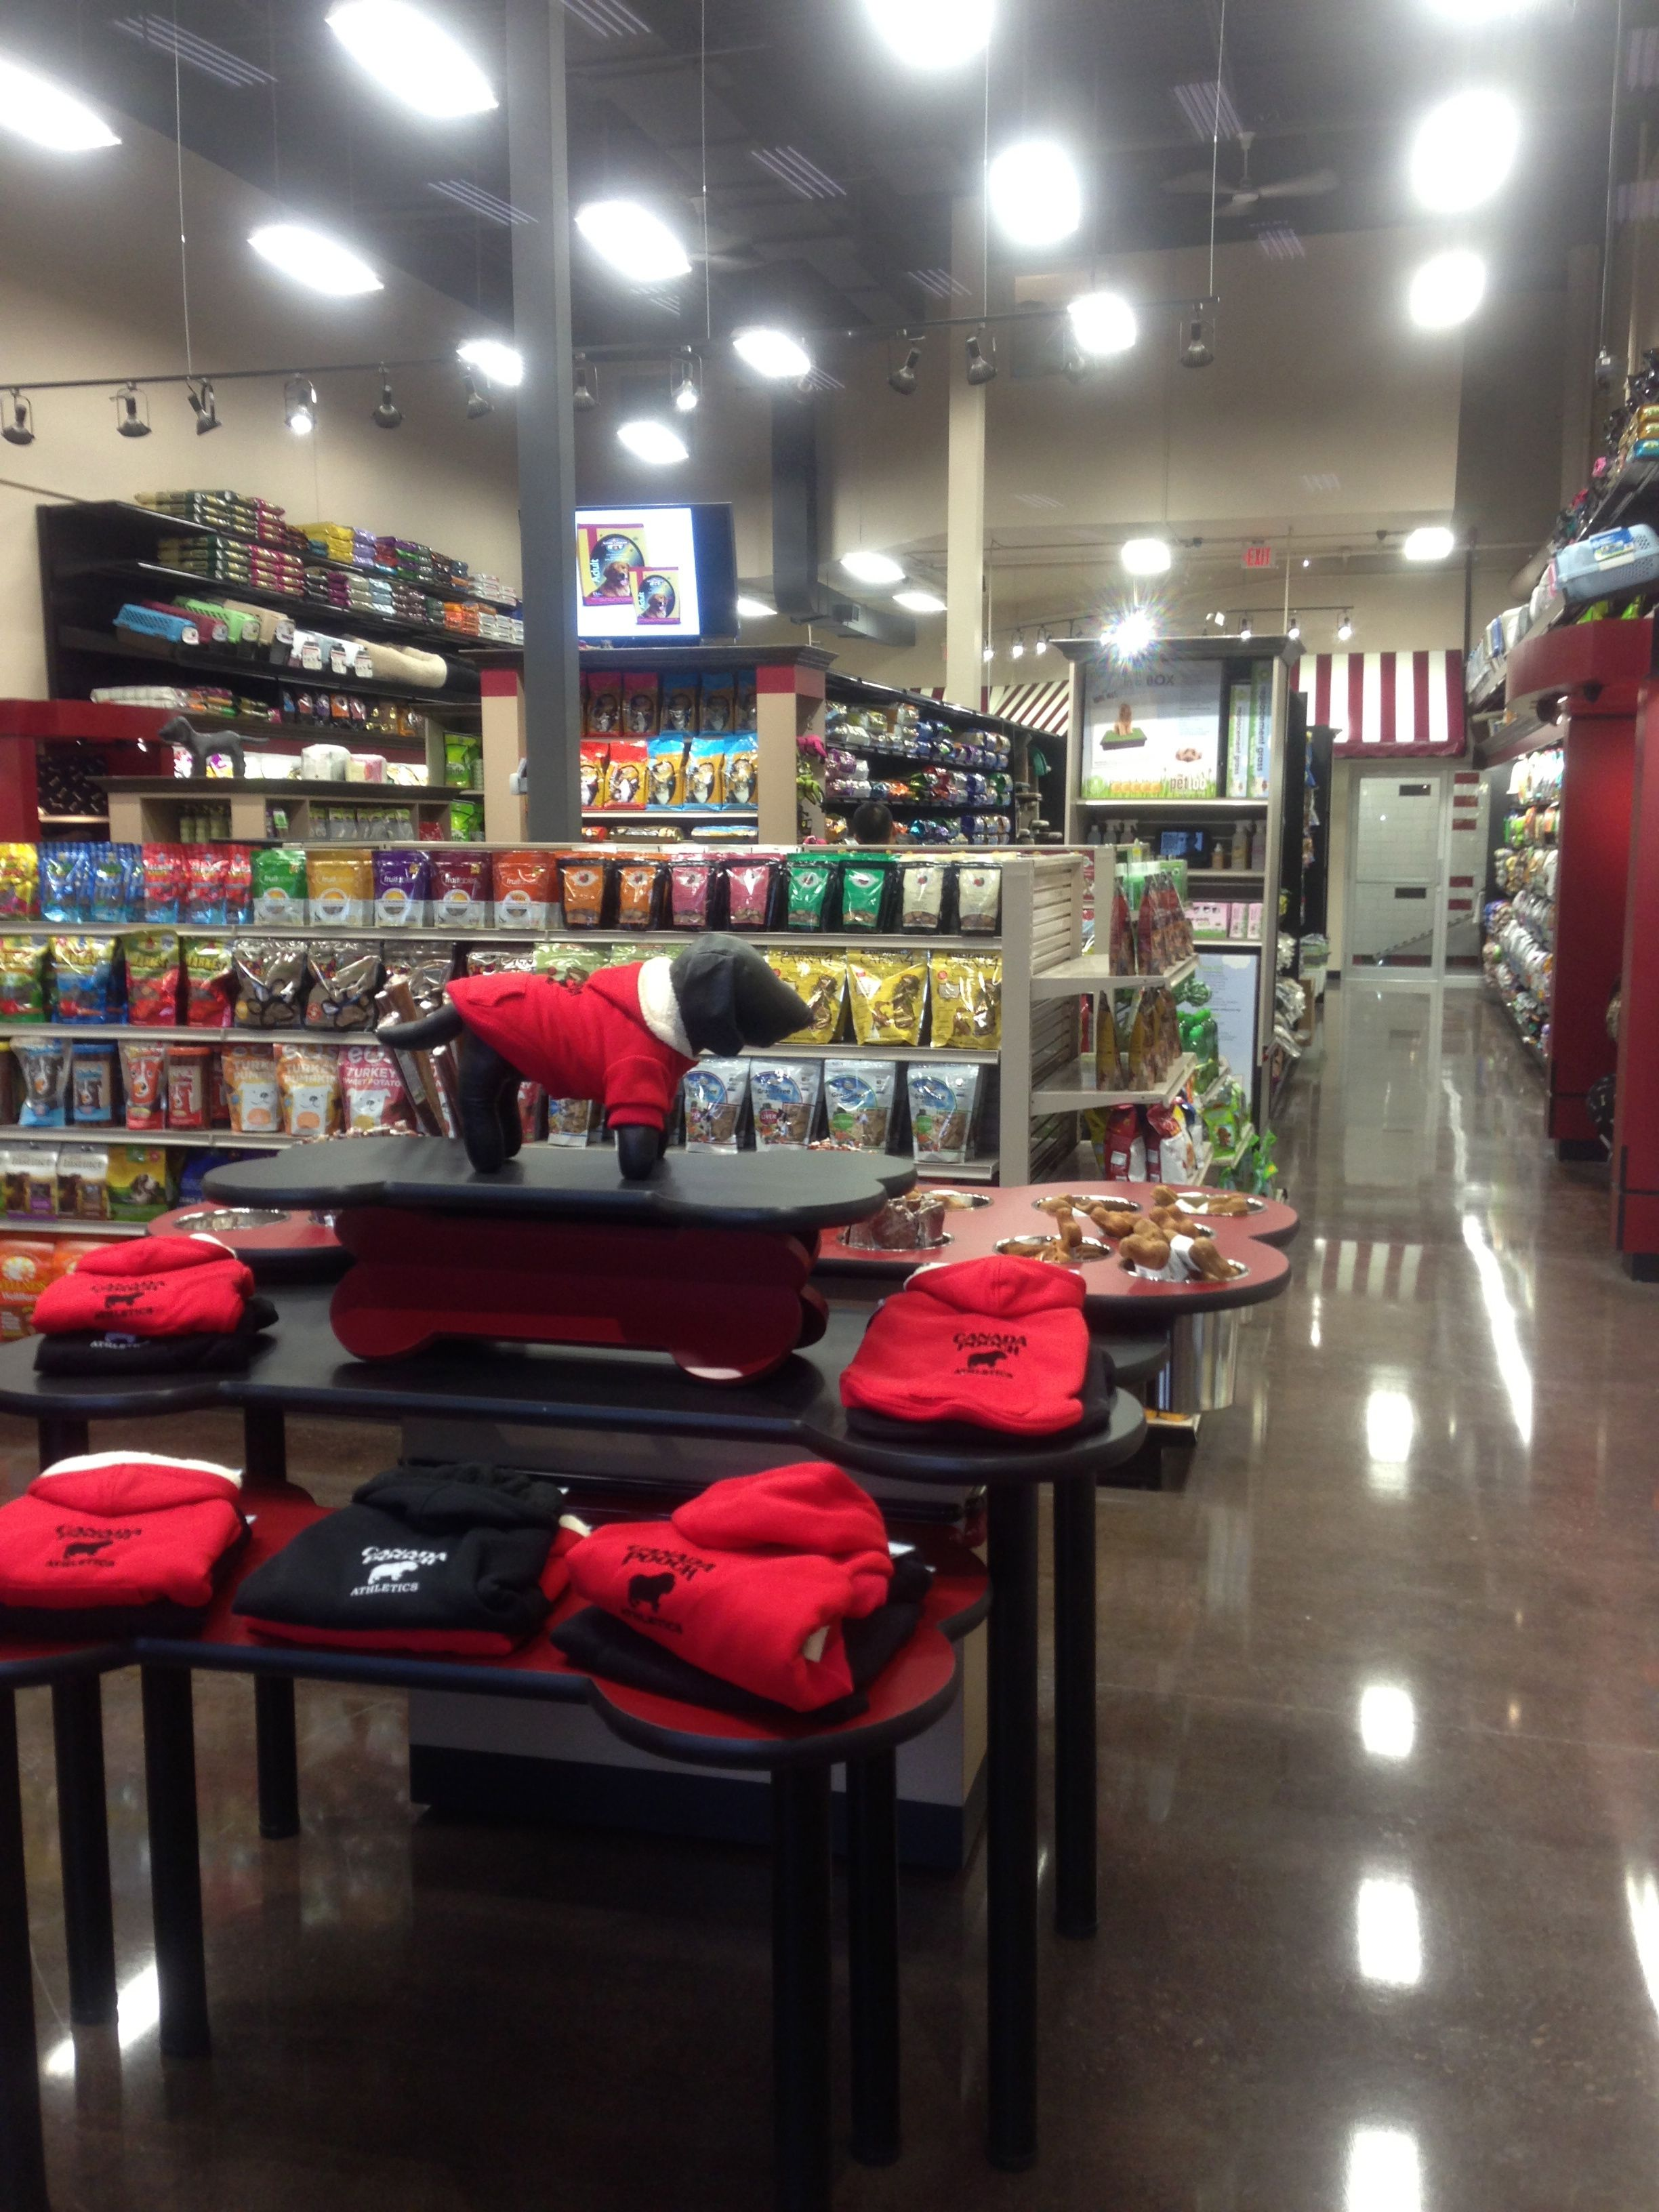 Global Pet Foods Is Thrilled To Announce That A New Store Opened In Unionville Ontario The Store Is Located At 4 Pet Store Ideas Dog Boutique Ideas Pet Store